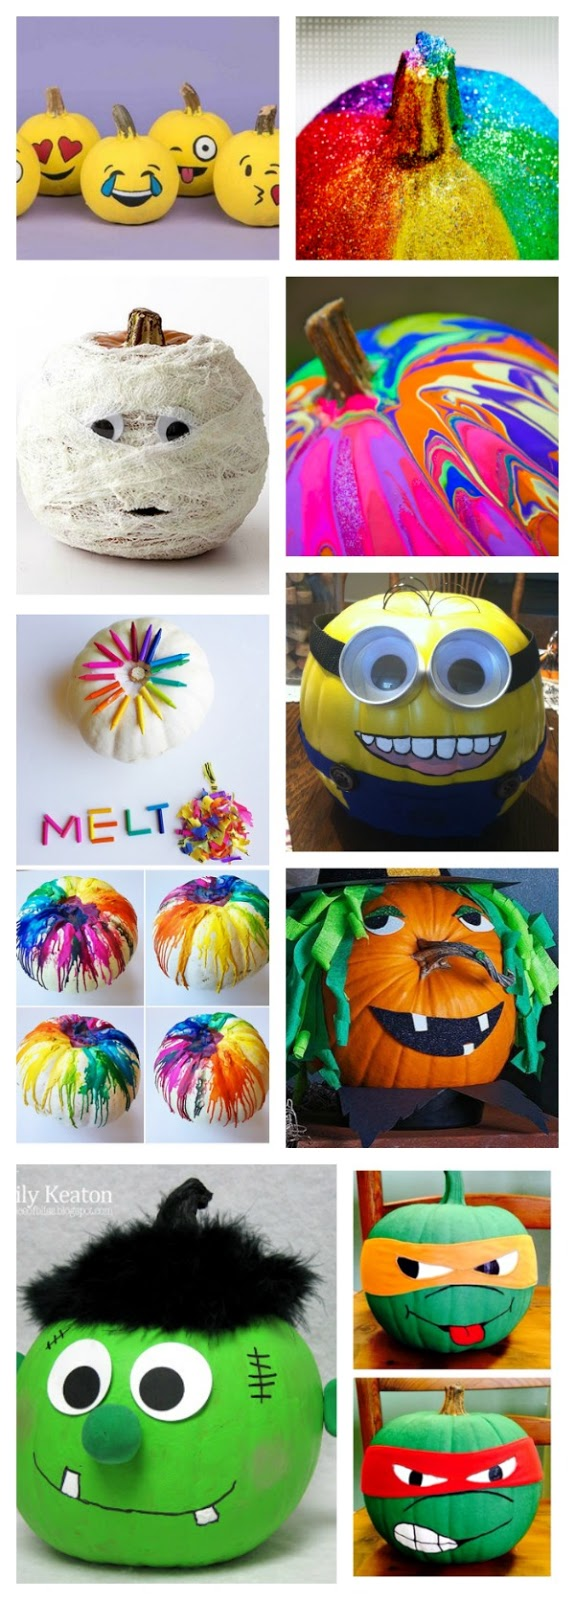 25+ no-carve pumpkin decorating ideas for kids.  Tons of ideas I've never seen before! #nocarvepumpkins #nocarvepumpkindecoratingforkids #growingajeweledrose #pumpkindecoratingideasforkids #pumpkindecoratingideasnocarve #kidspumpkincrafts #fallcraftsforkidspreschool #fallactivitiestoddlers